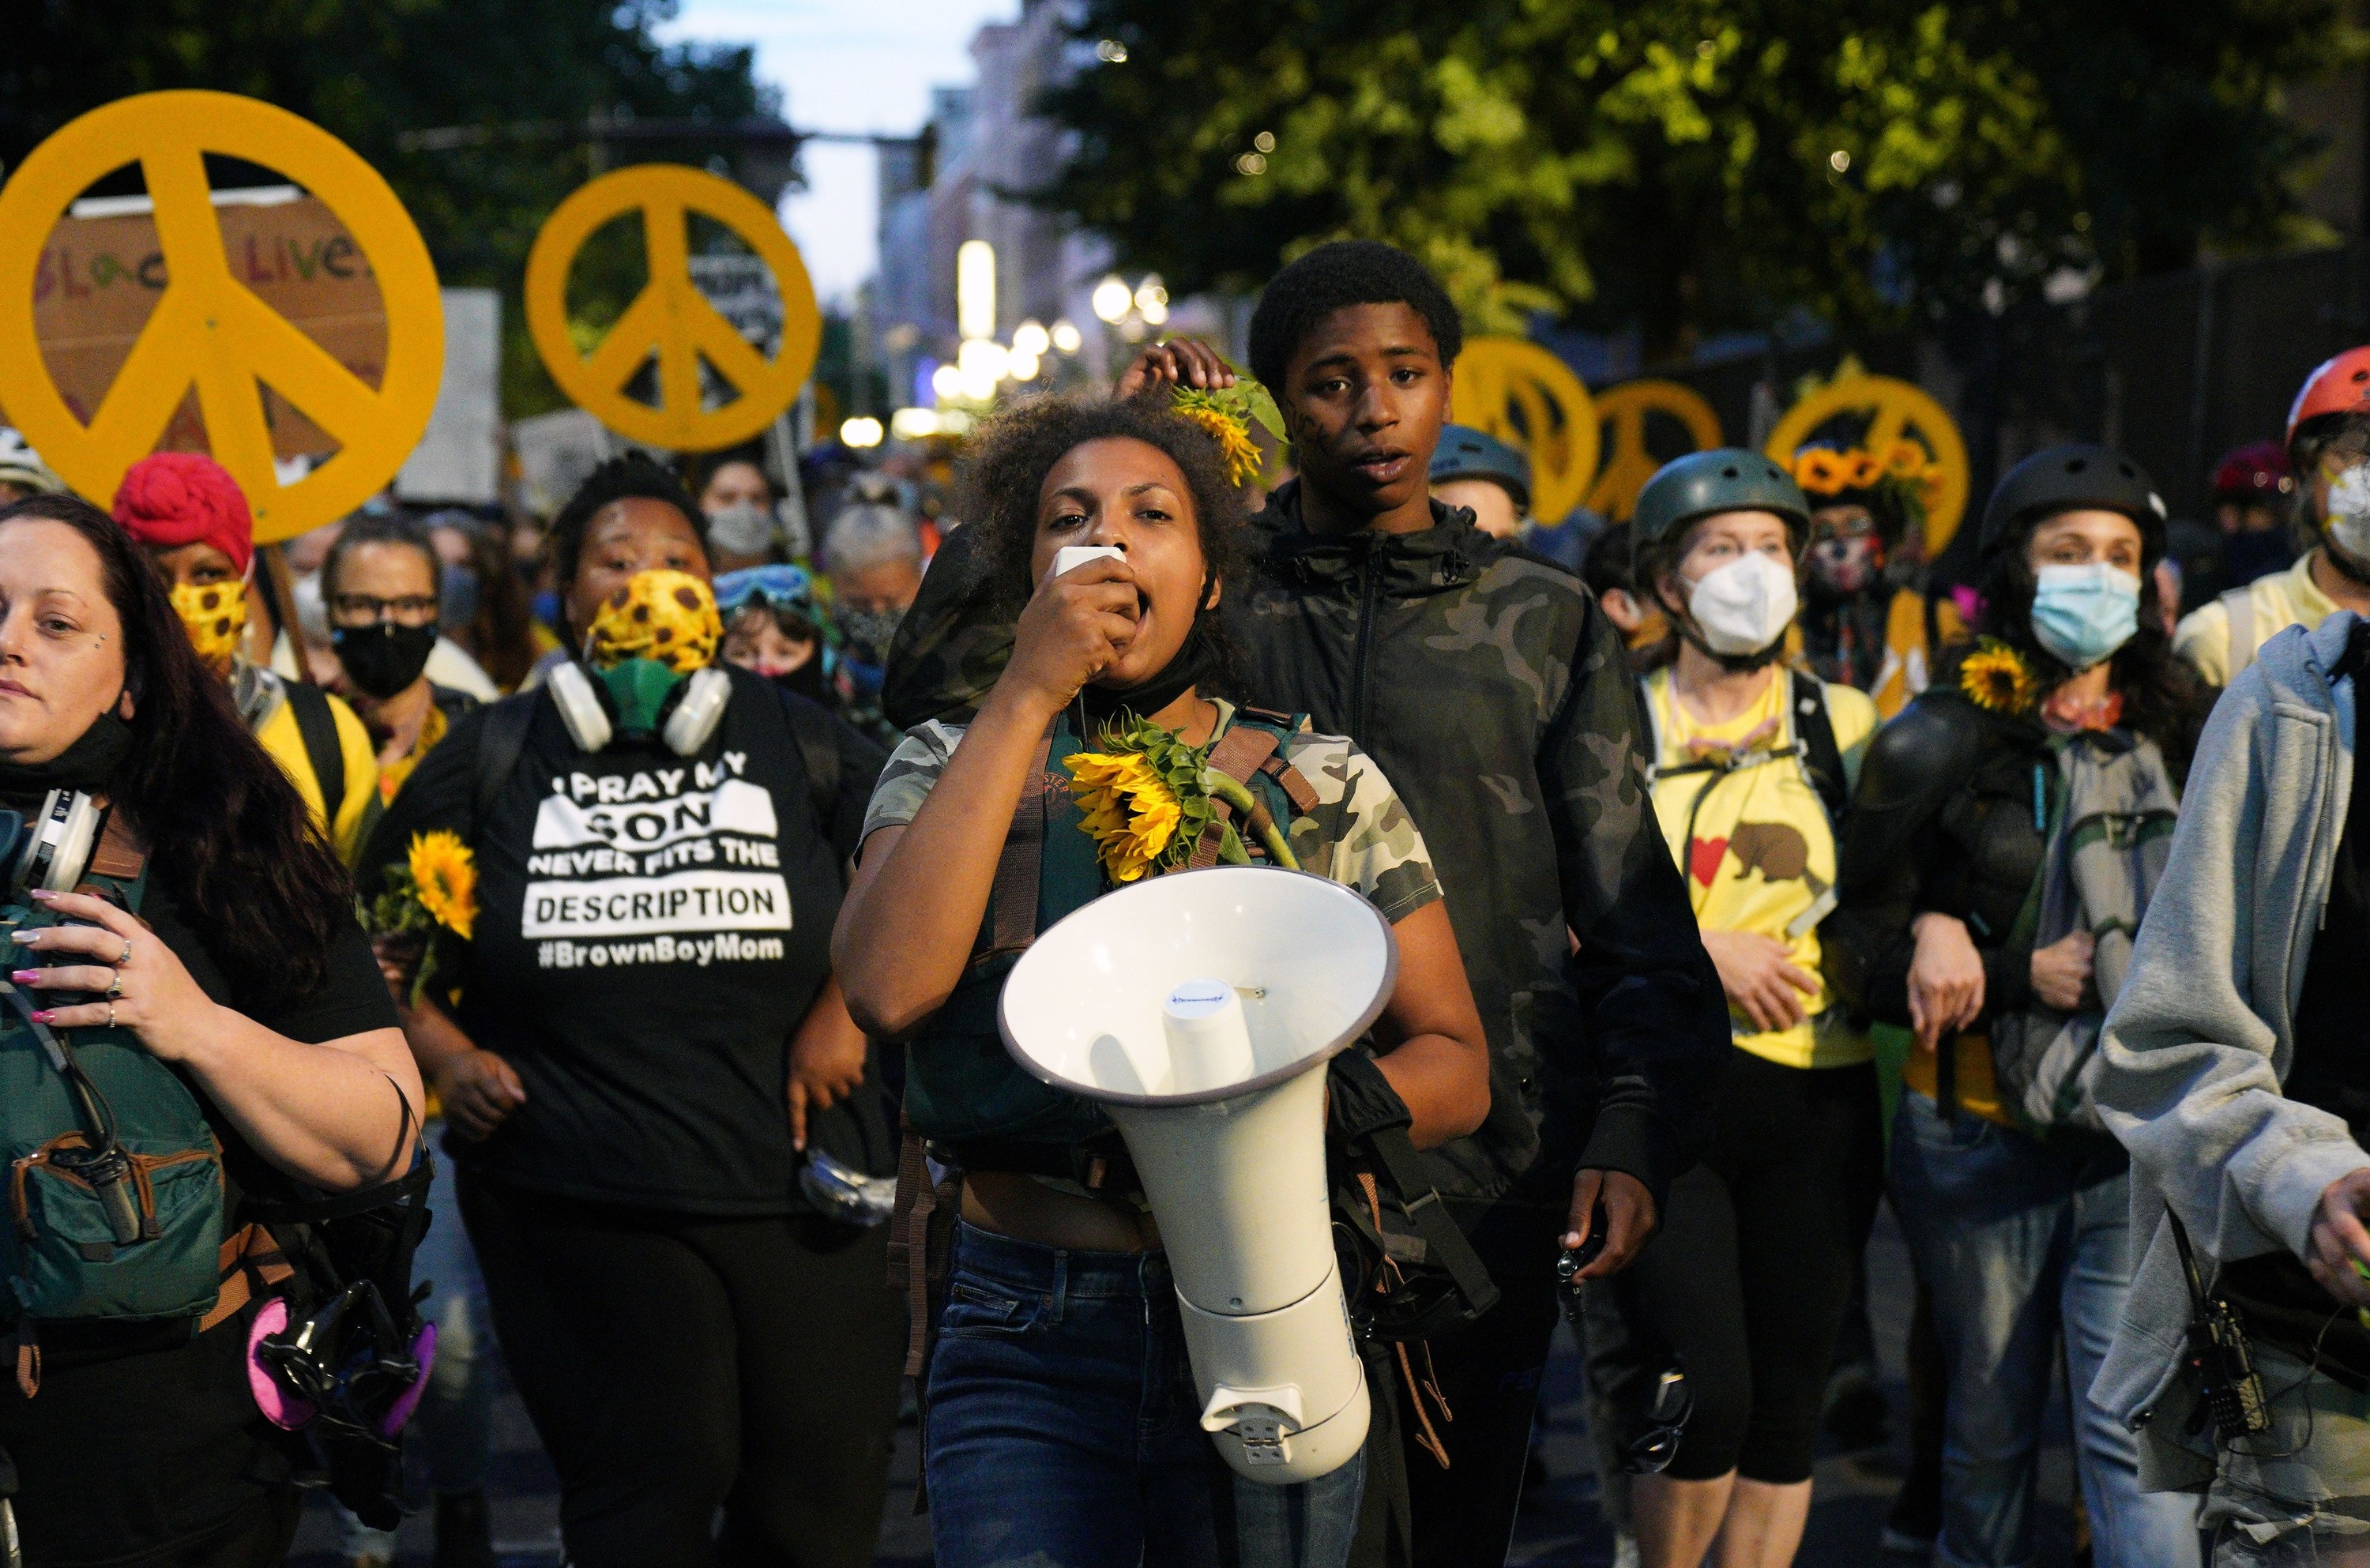 A young Black woman protester speaks into a megaphone in front of a group of demonstrators carrying peace signs